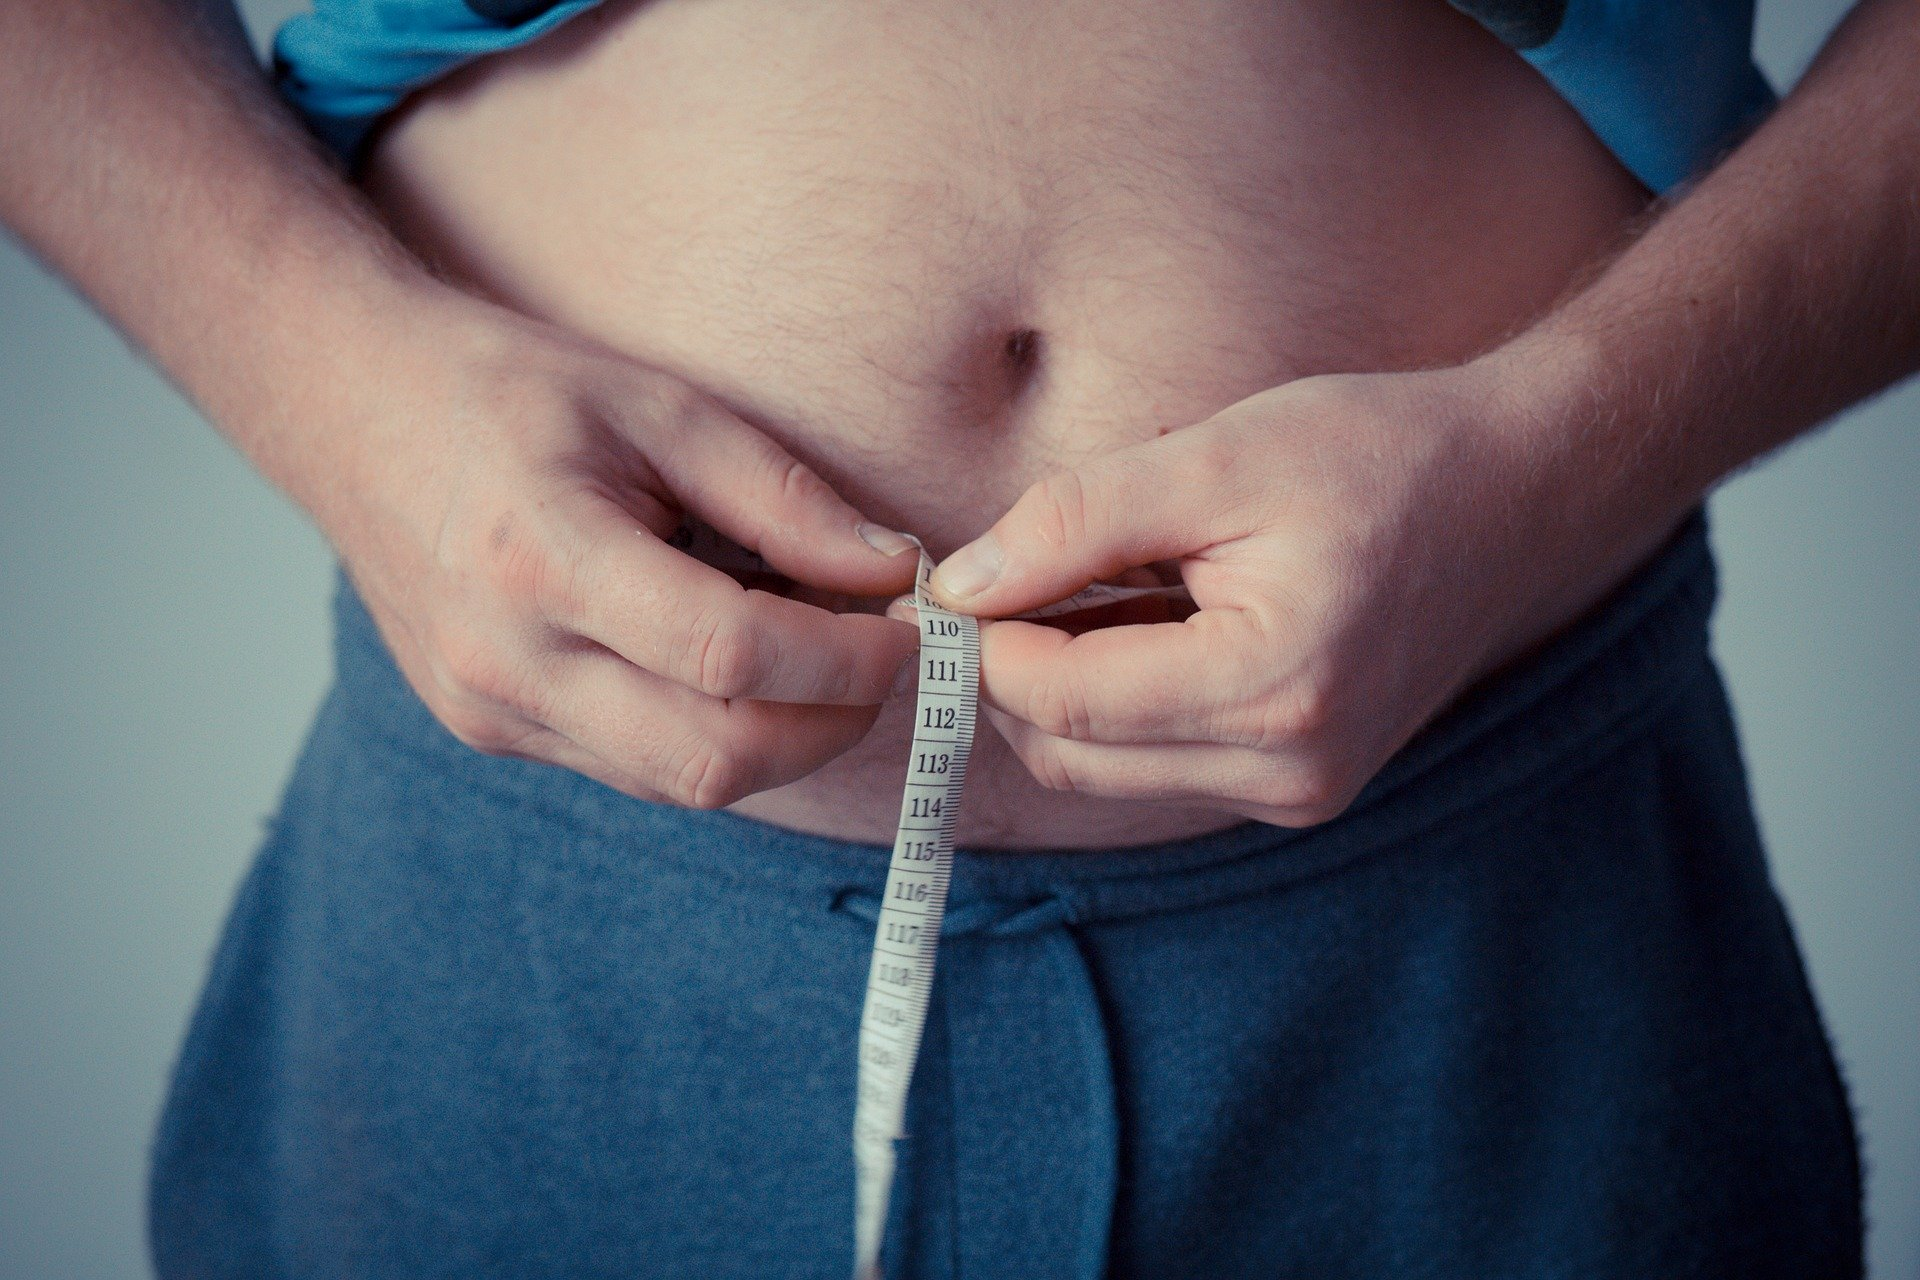 Obesity - A man with a tummy?